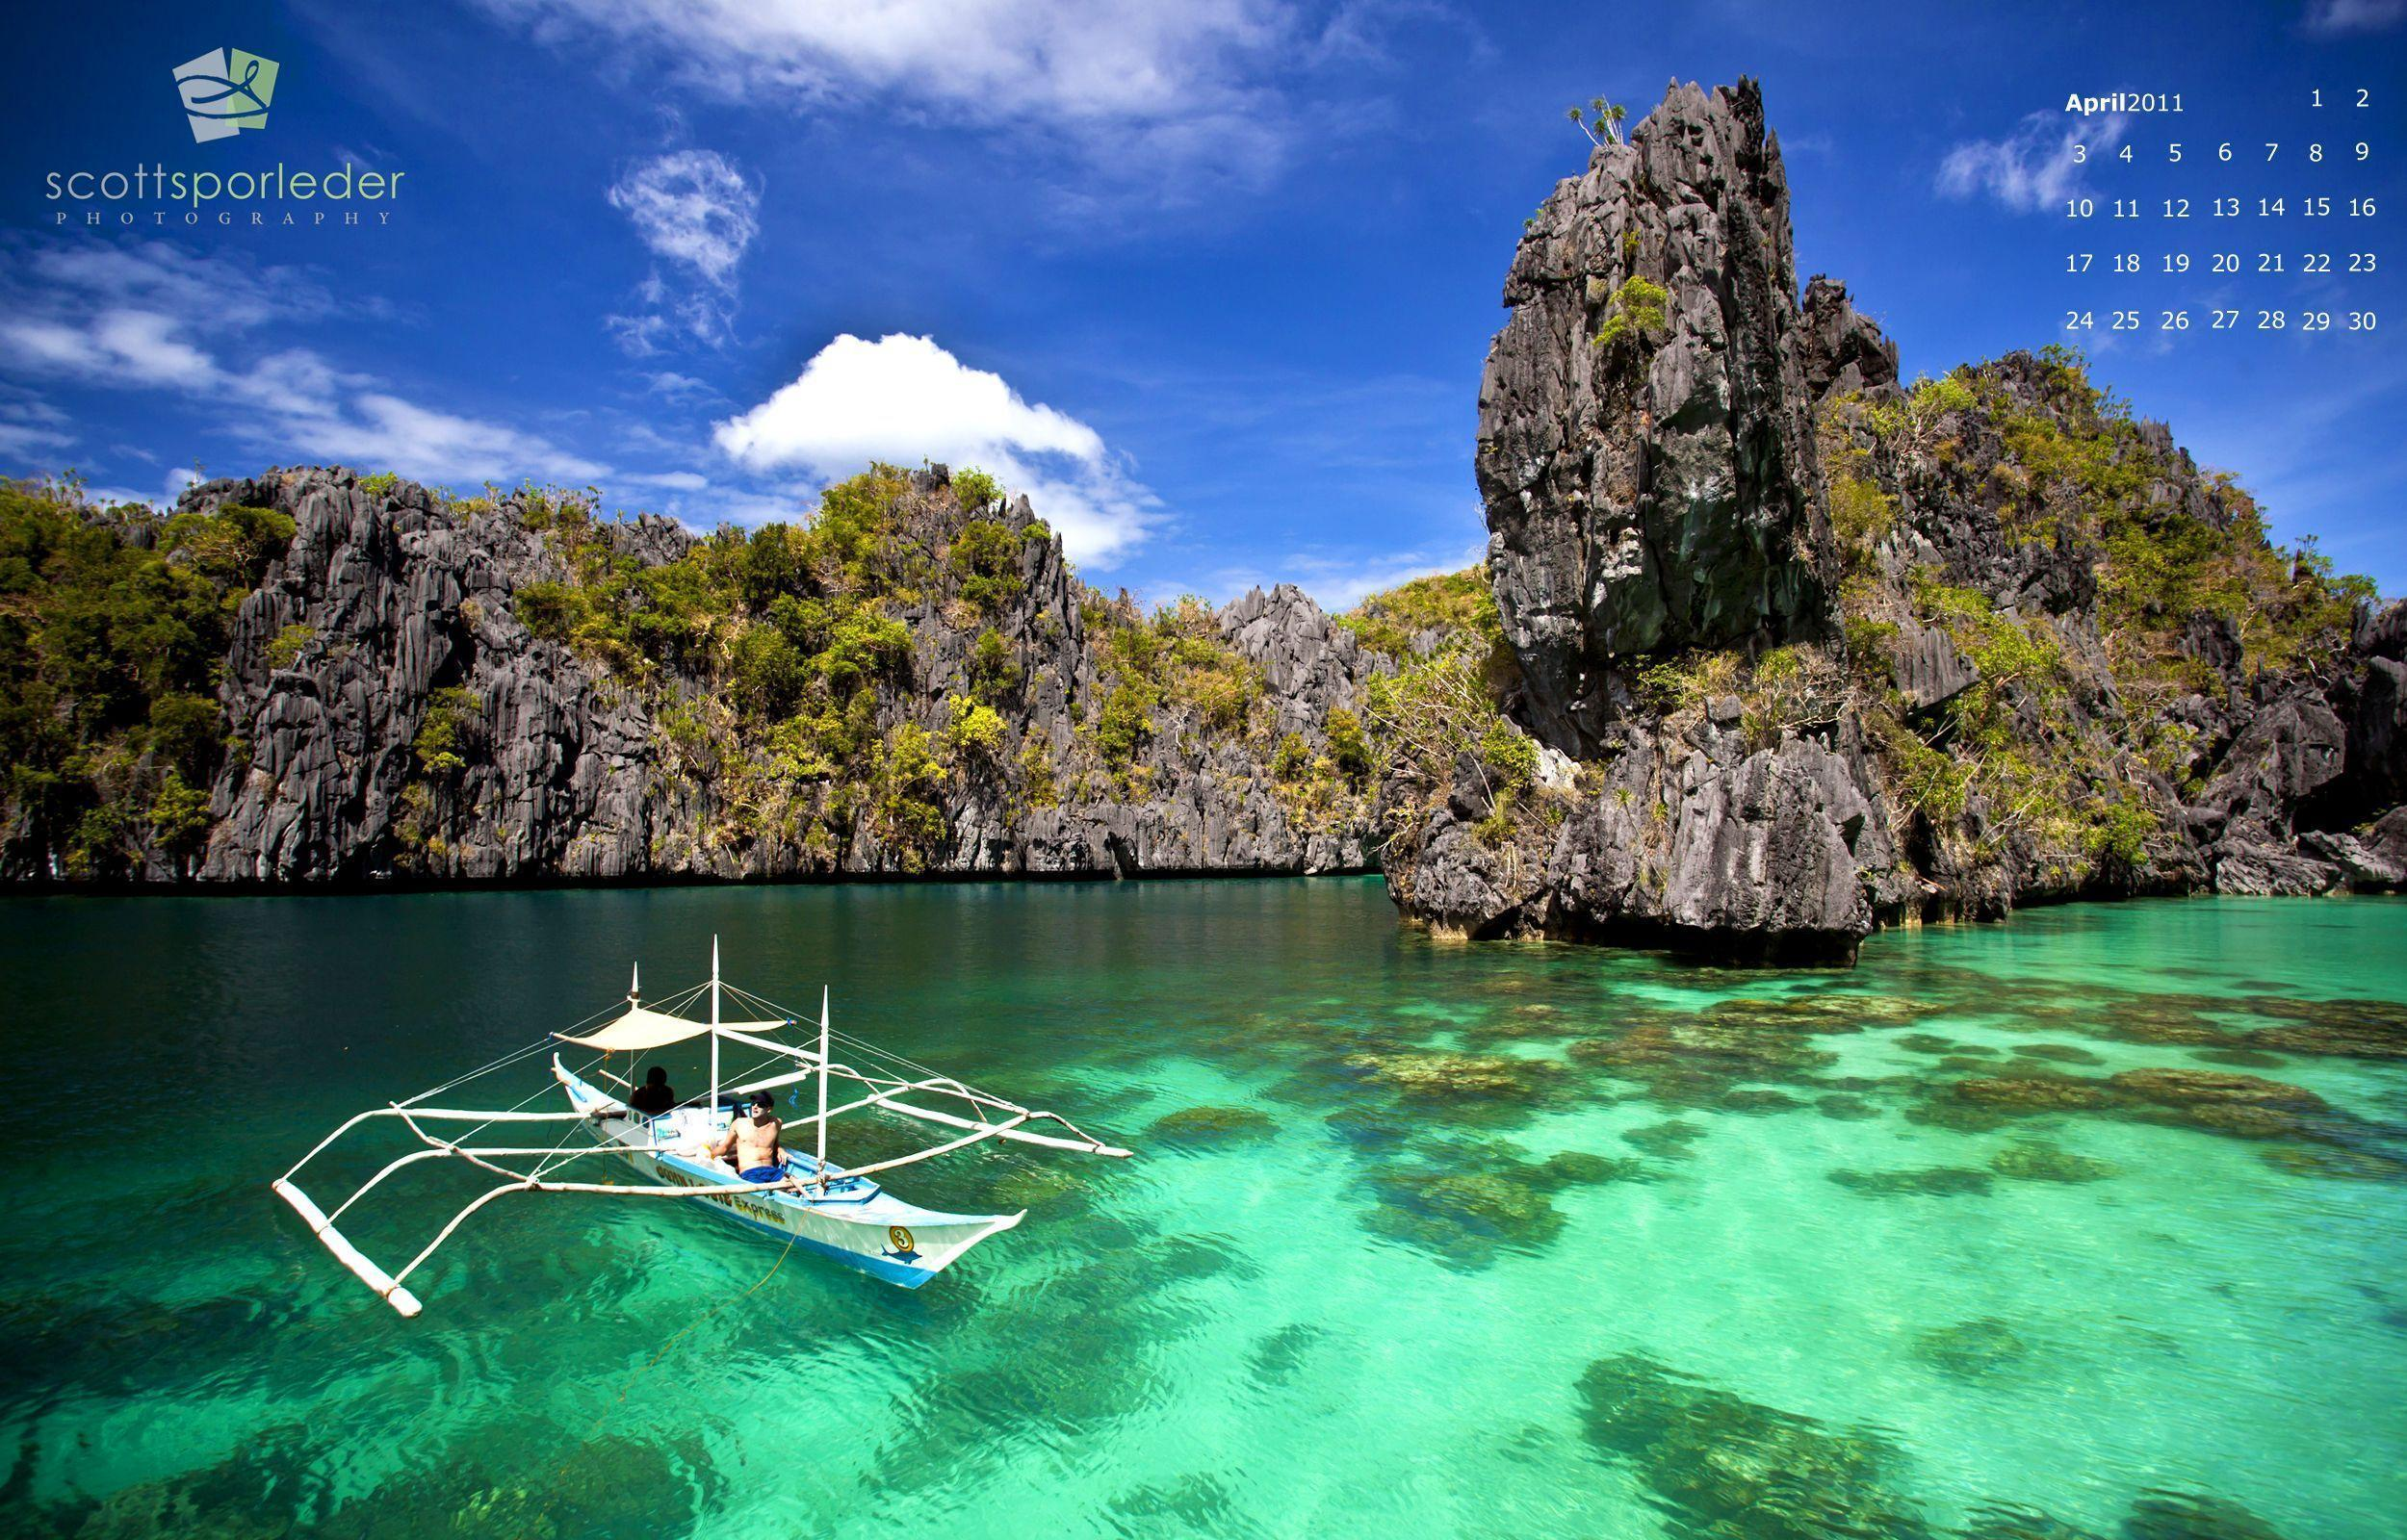 hd wallpaper philippines | Scott Sporleder | Places to Visit ...